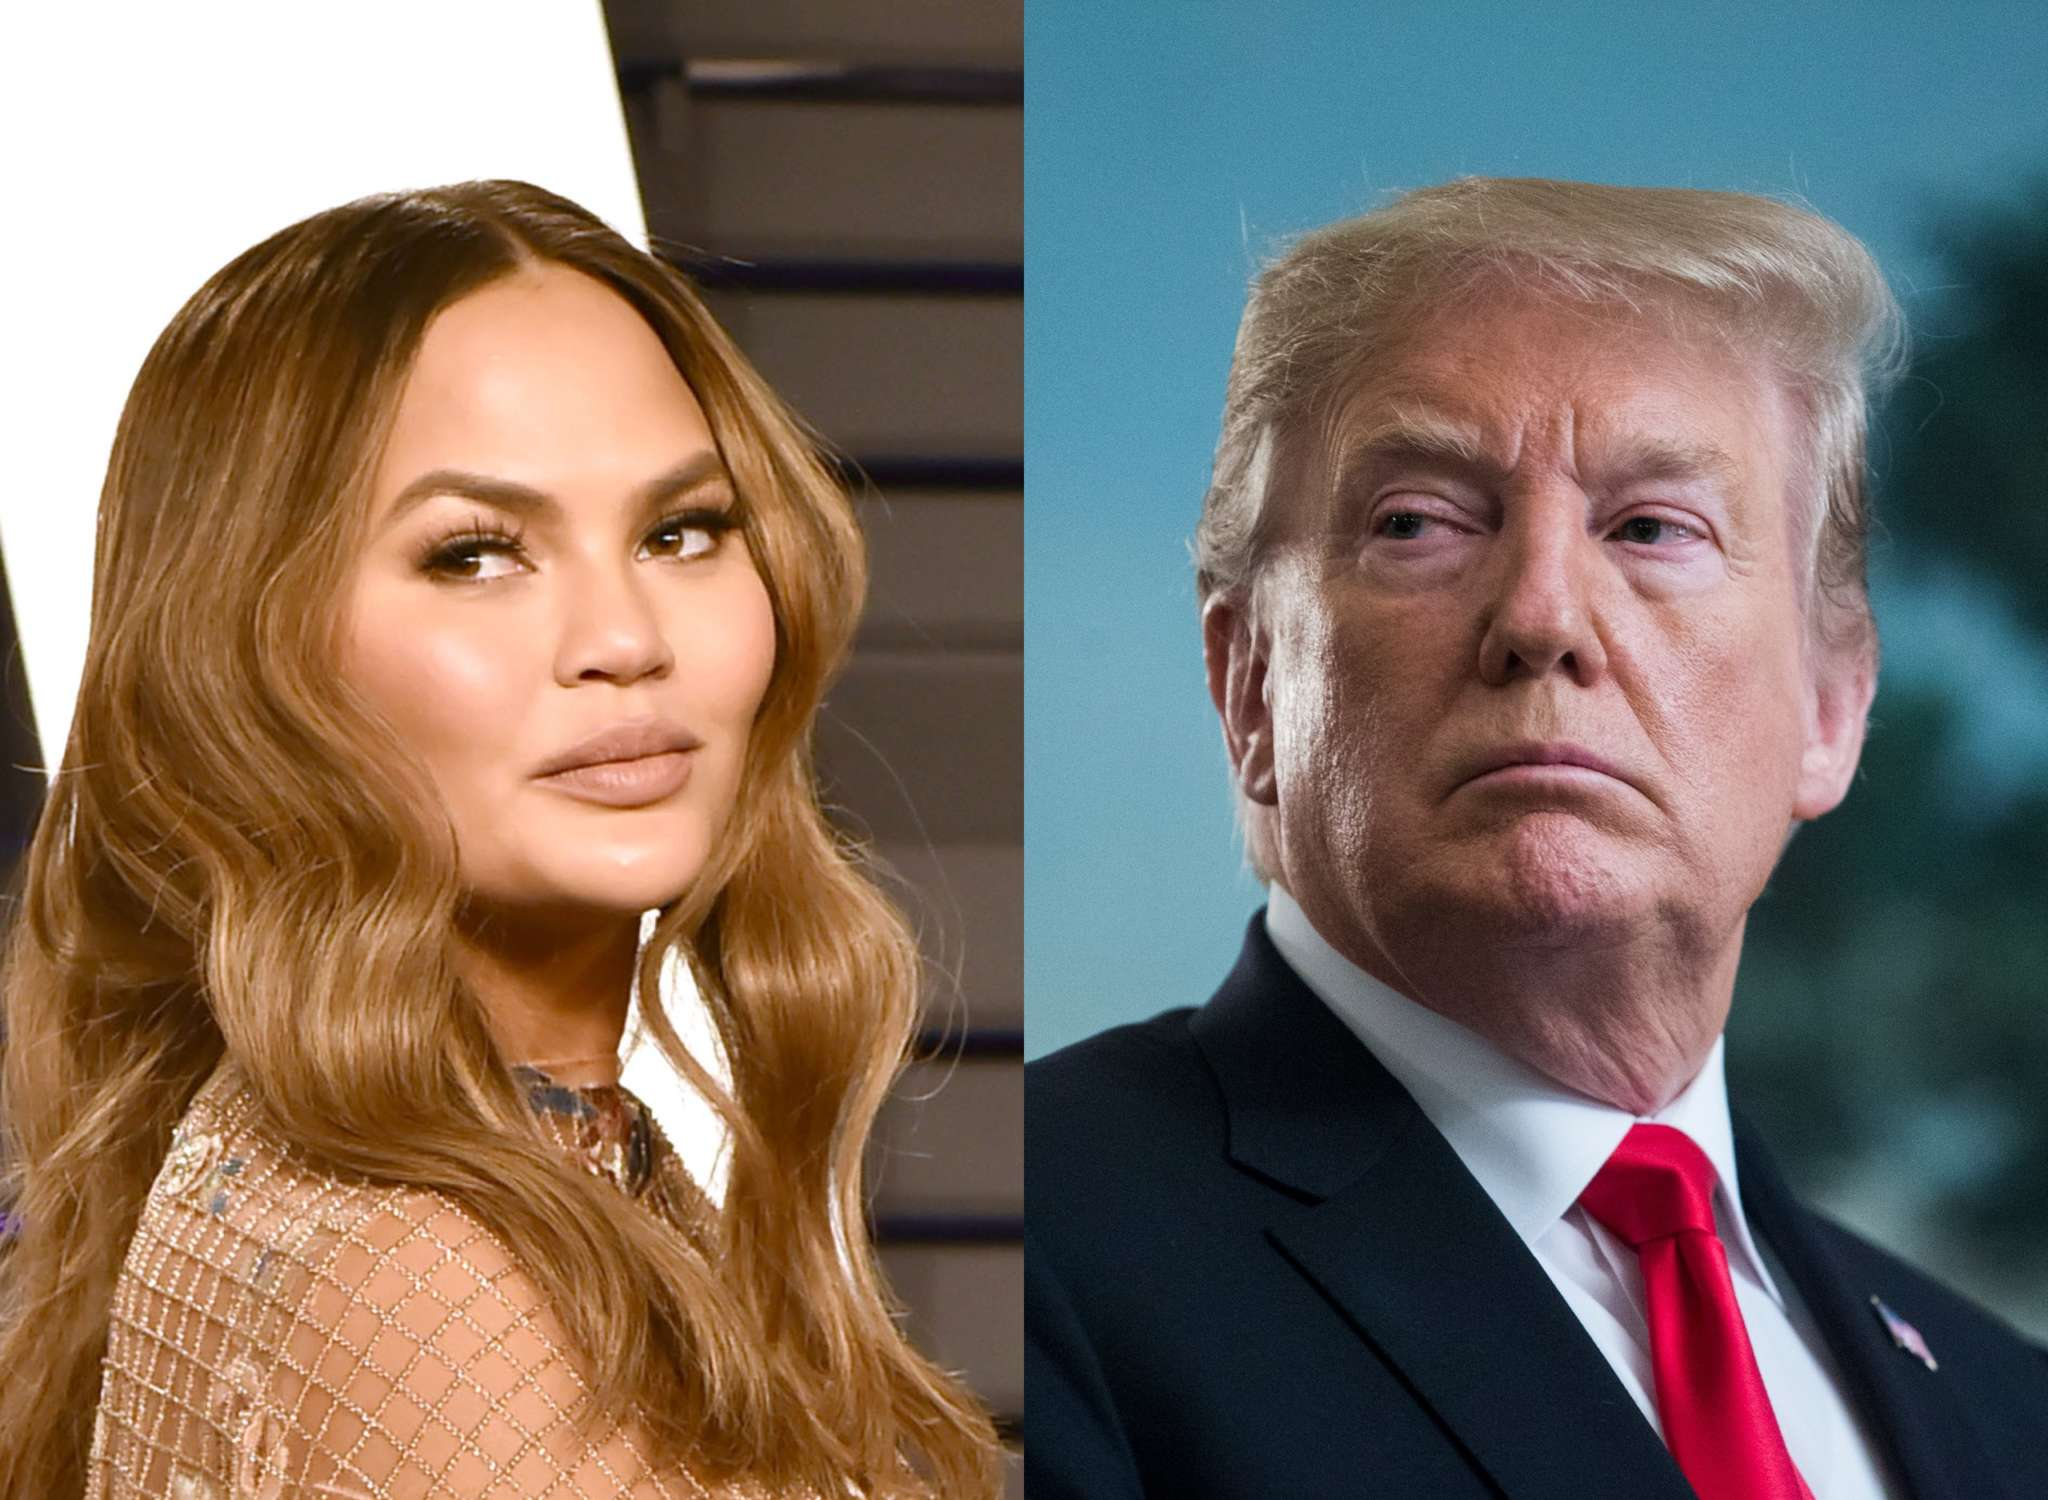 """chrissy-teigen-disses-donald-trump-even-more-says-she-doesnt-care-the-president-dislikes-her"""